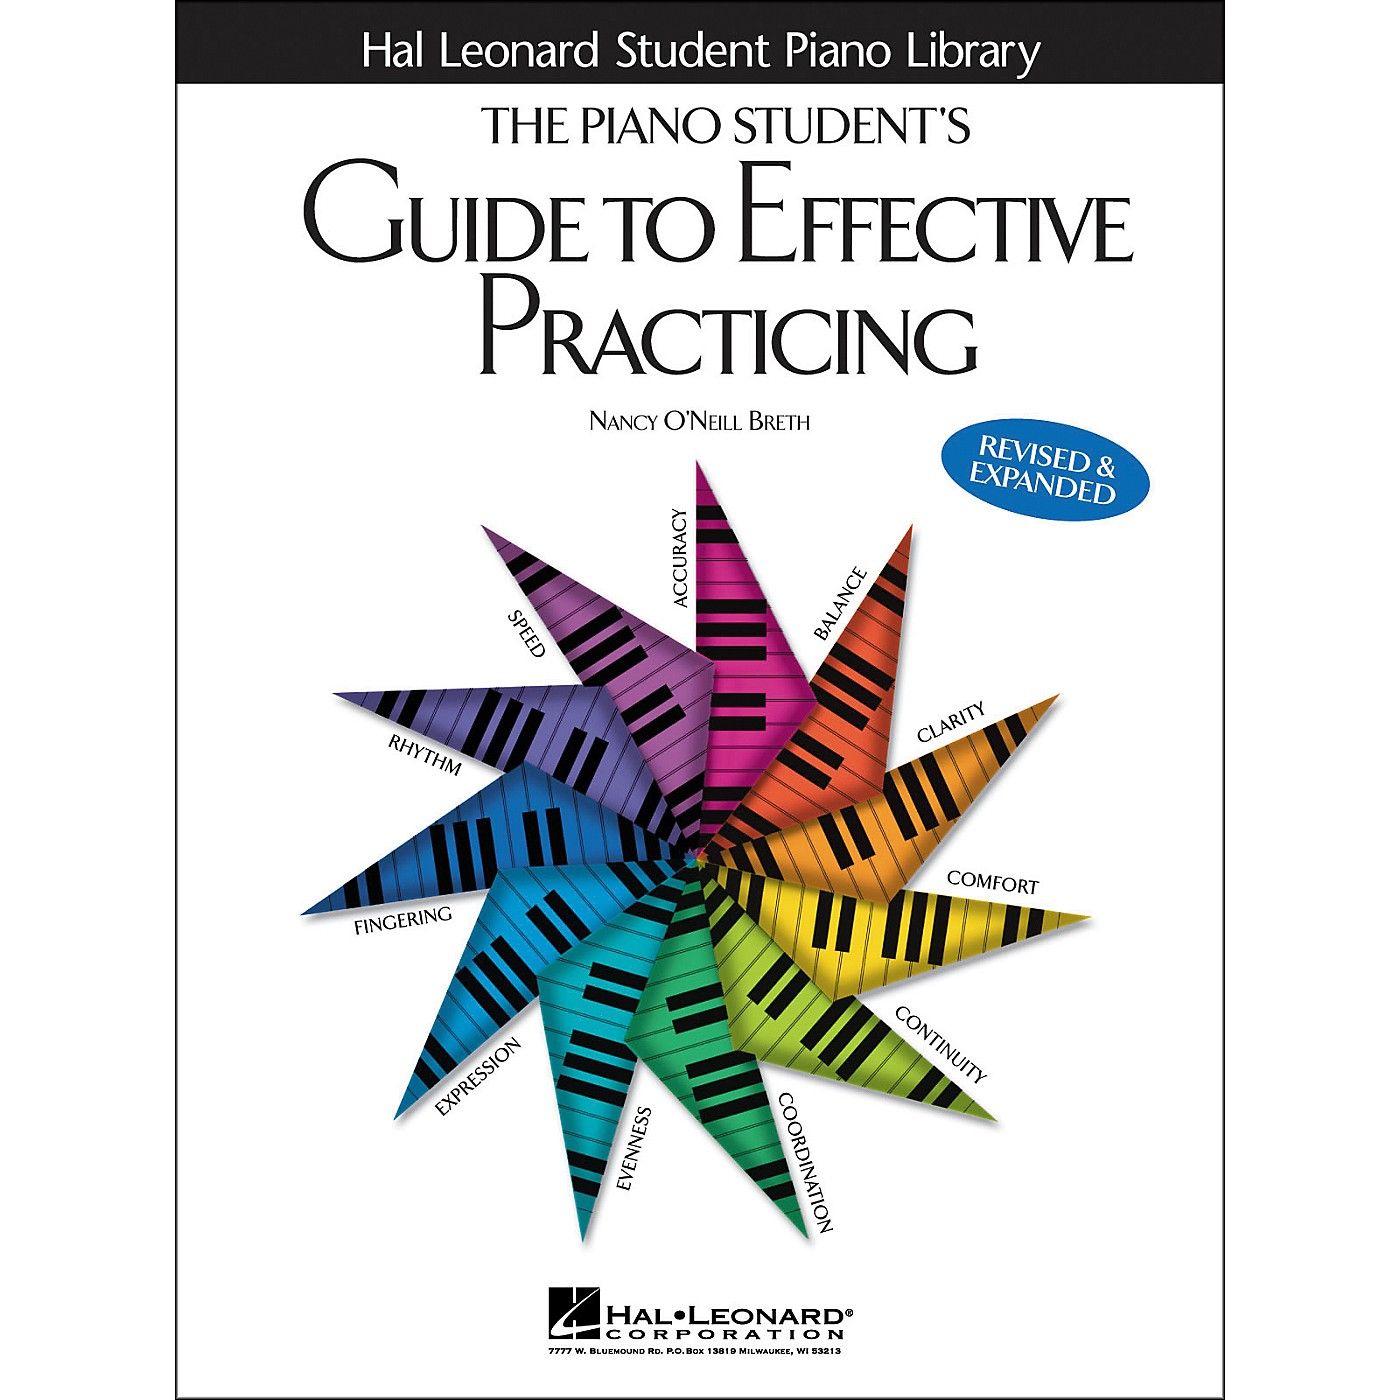 Hal Leonard The Piano Student's Guide To Effective Practicing Hal Leonard Student Piano Library thumbnail